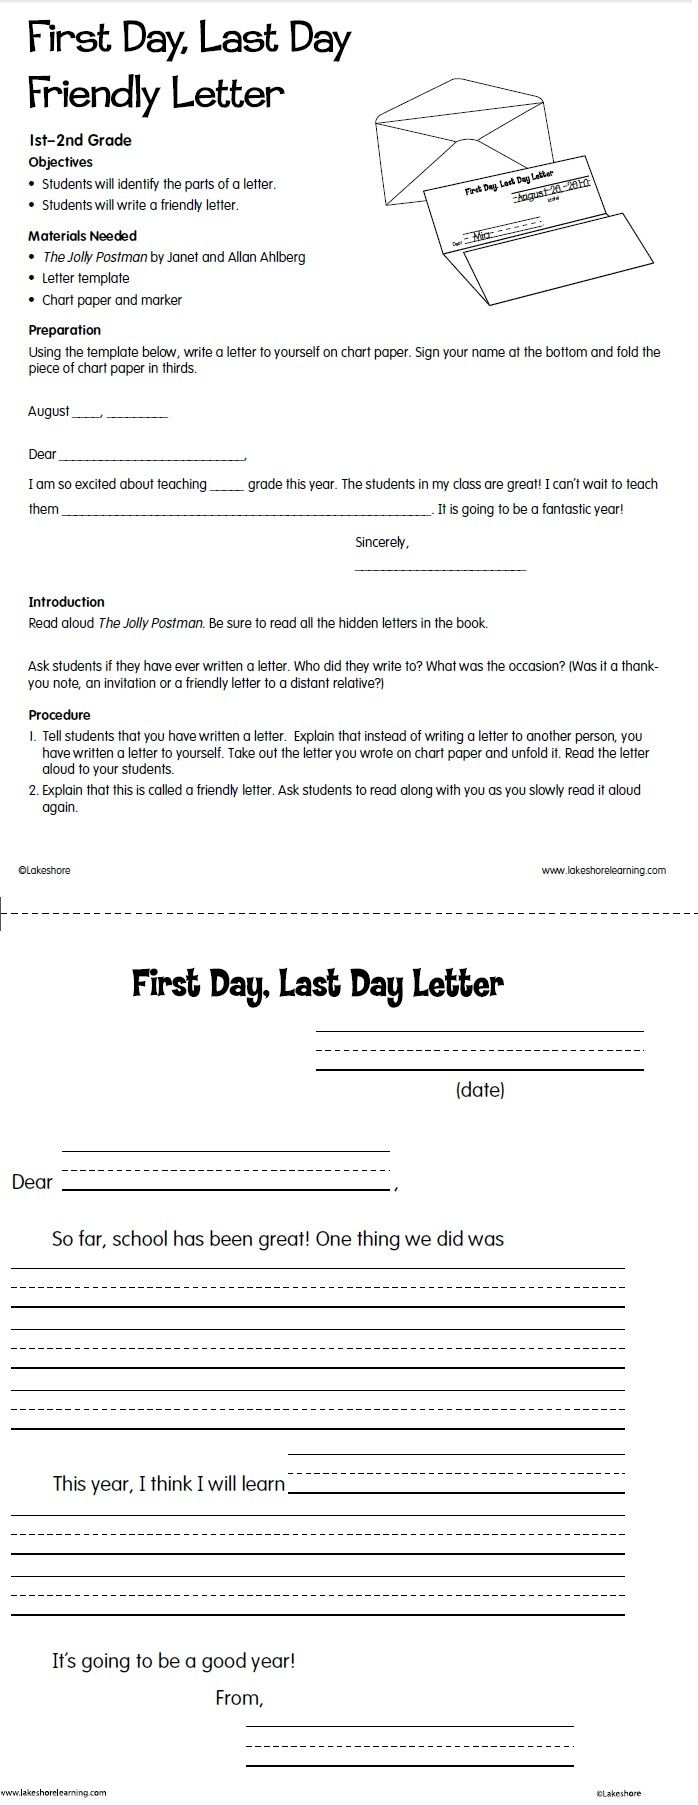 First day last day friendly letter lesson plan from lakeshore first day last day friendly letter lesson plan from lakeshore learning mitanshu Choice Image